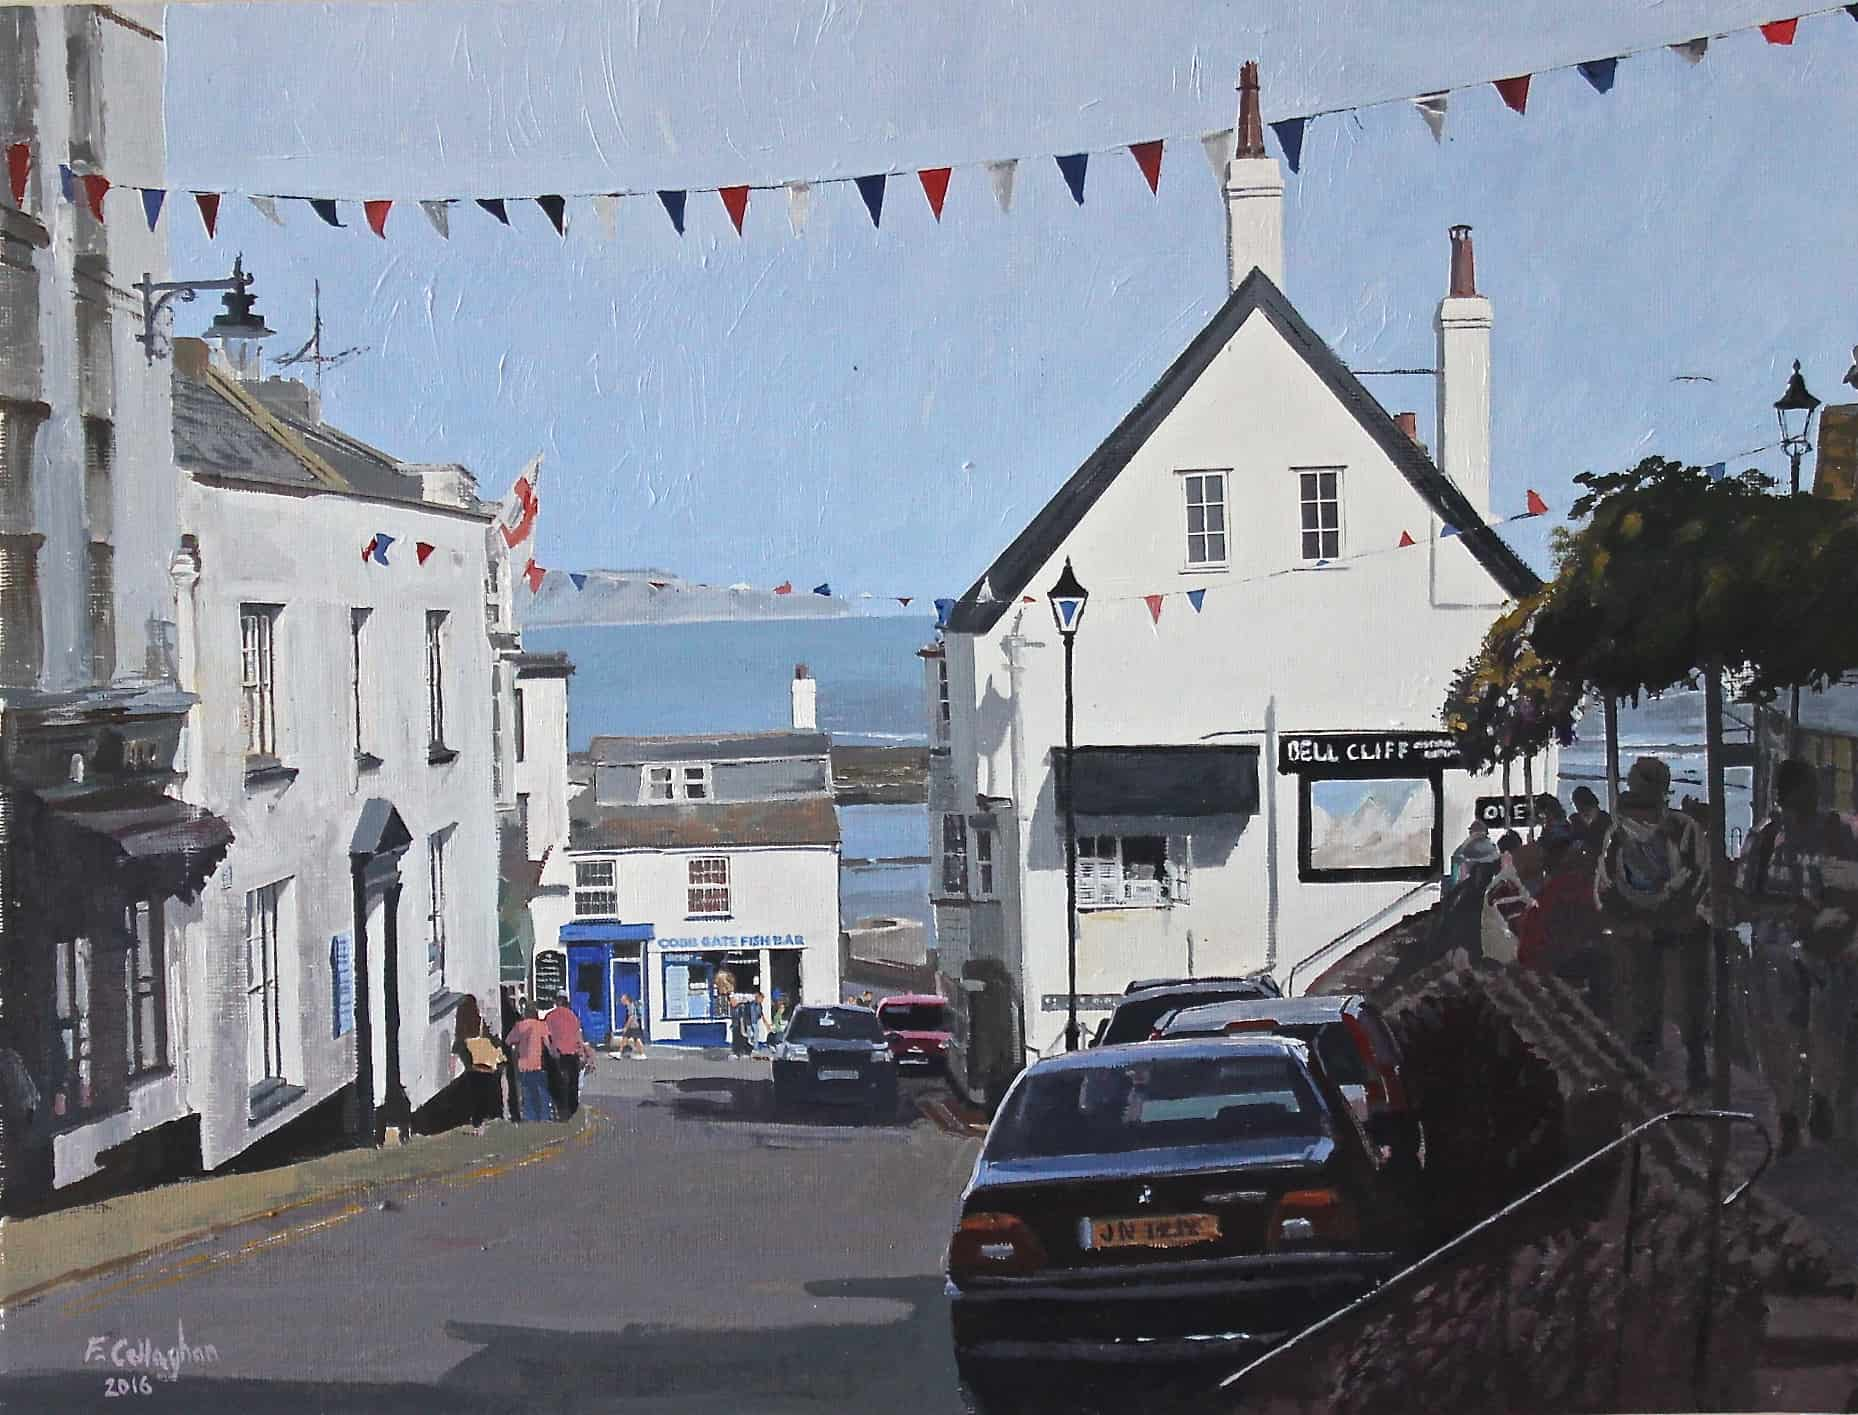 Lyme Regis High Street Painted by Frank Callaghan